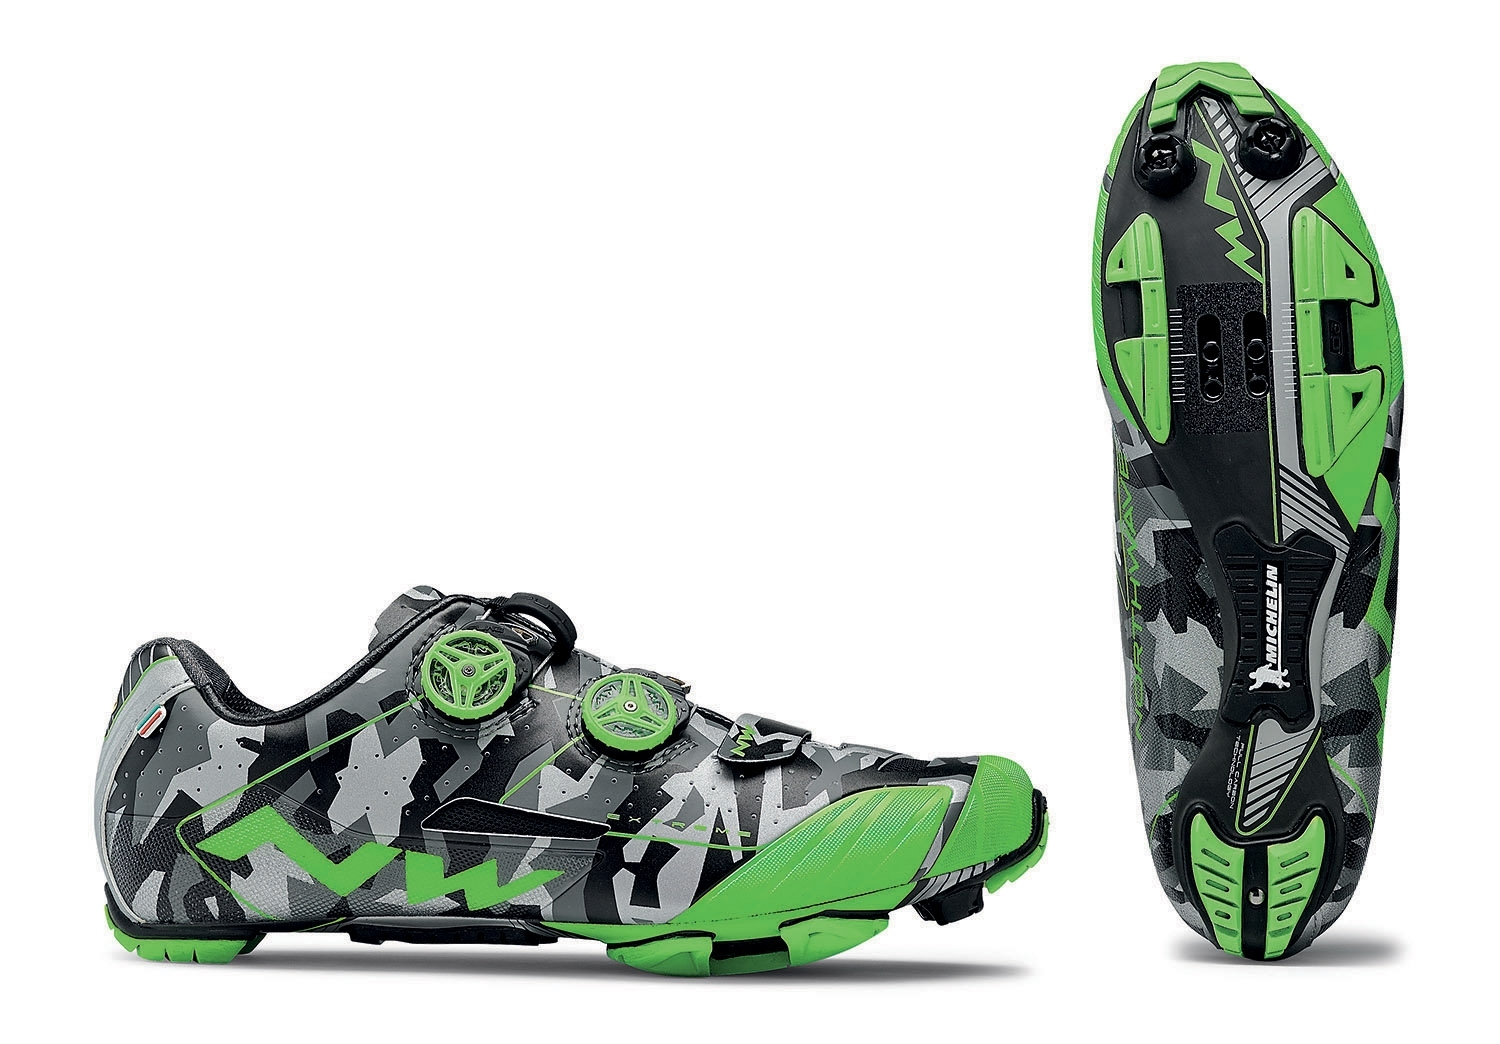 Best price Northwave Man bike shoes EXTREME XC Italy2us.com